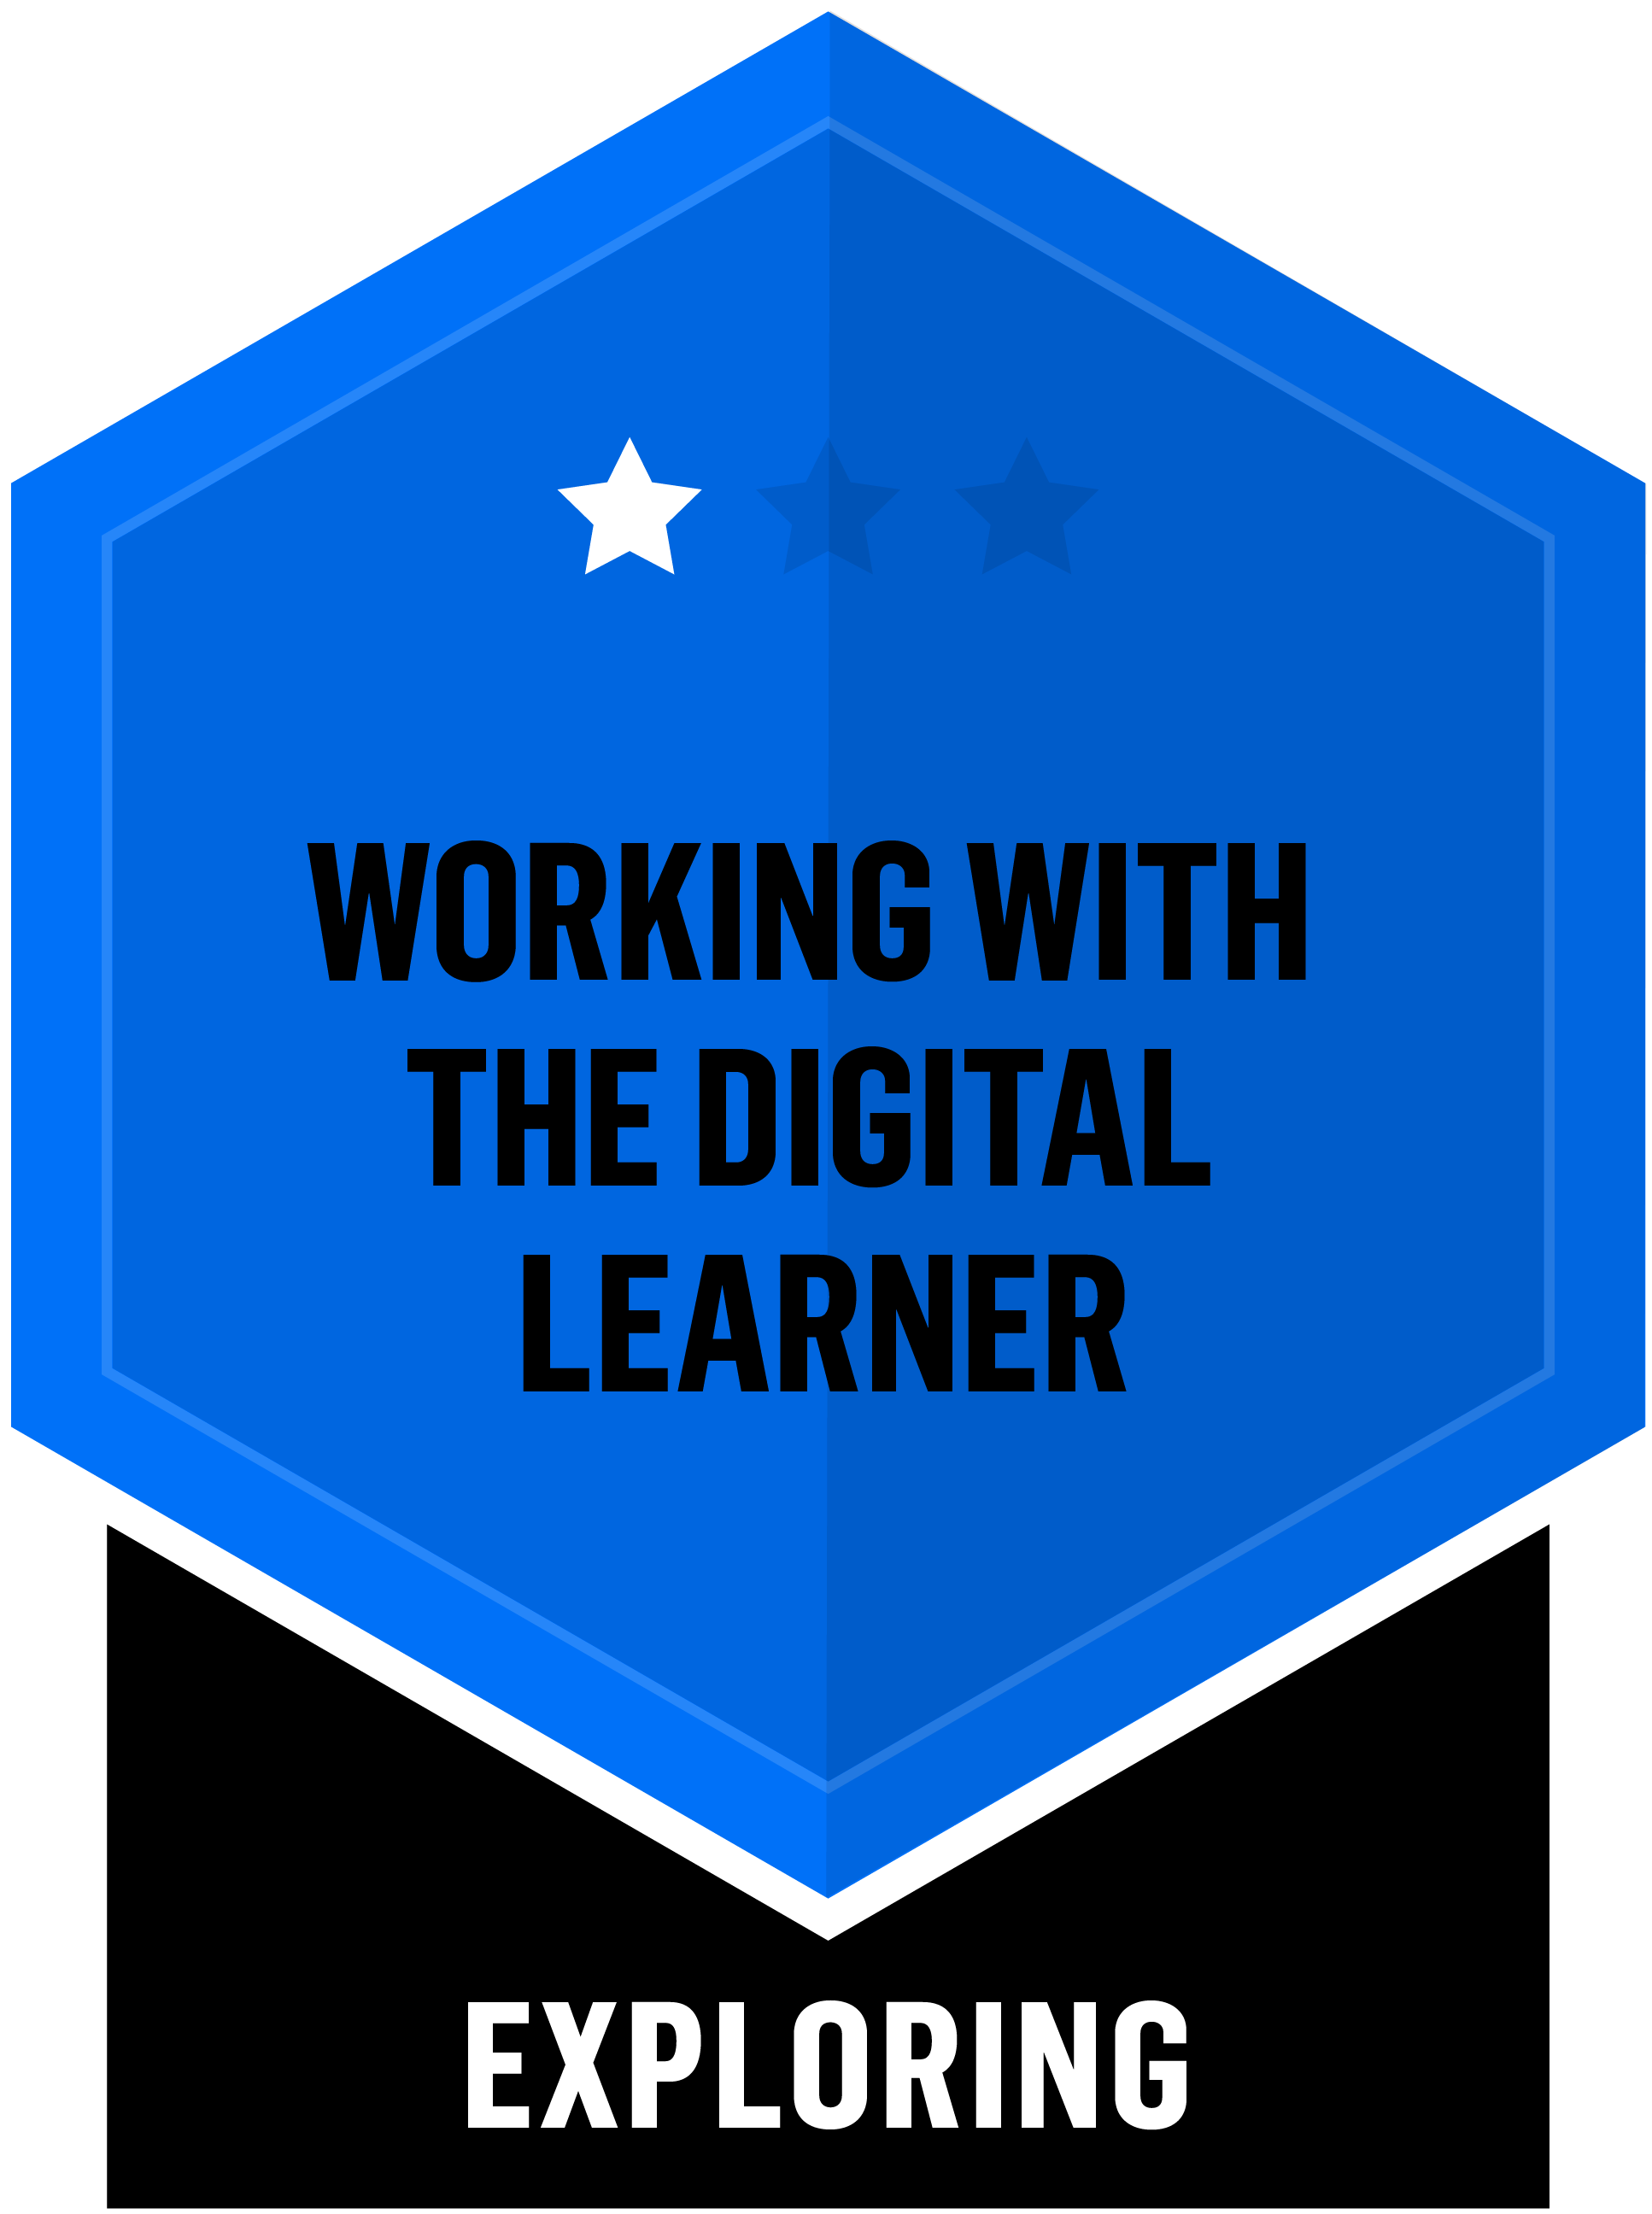 Working with the Digital Learner - Exploring